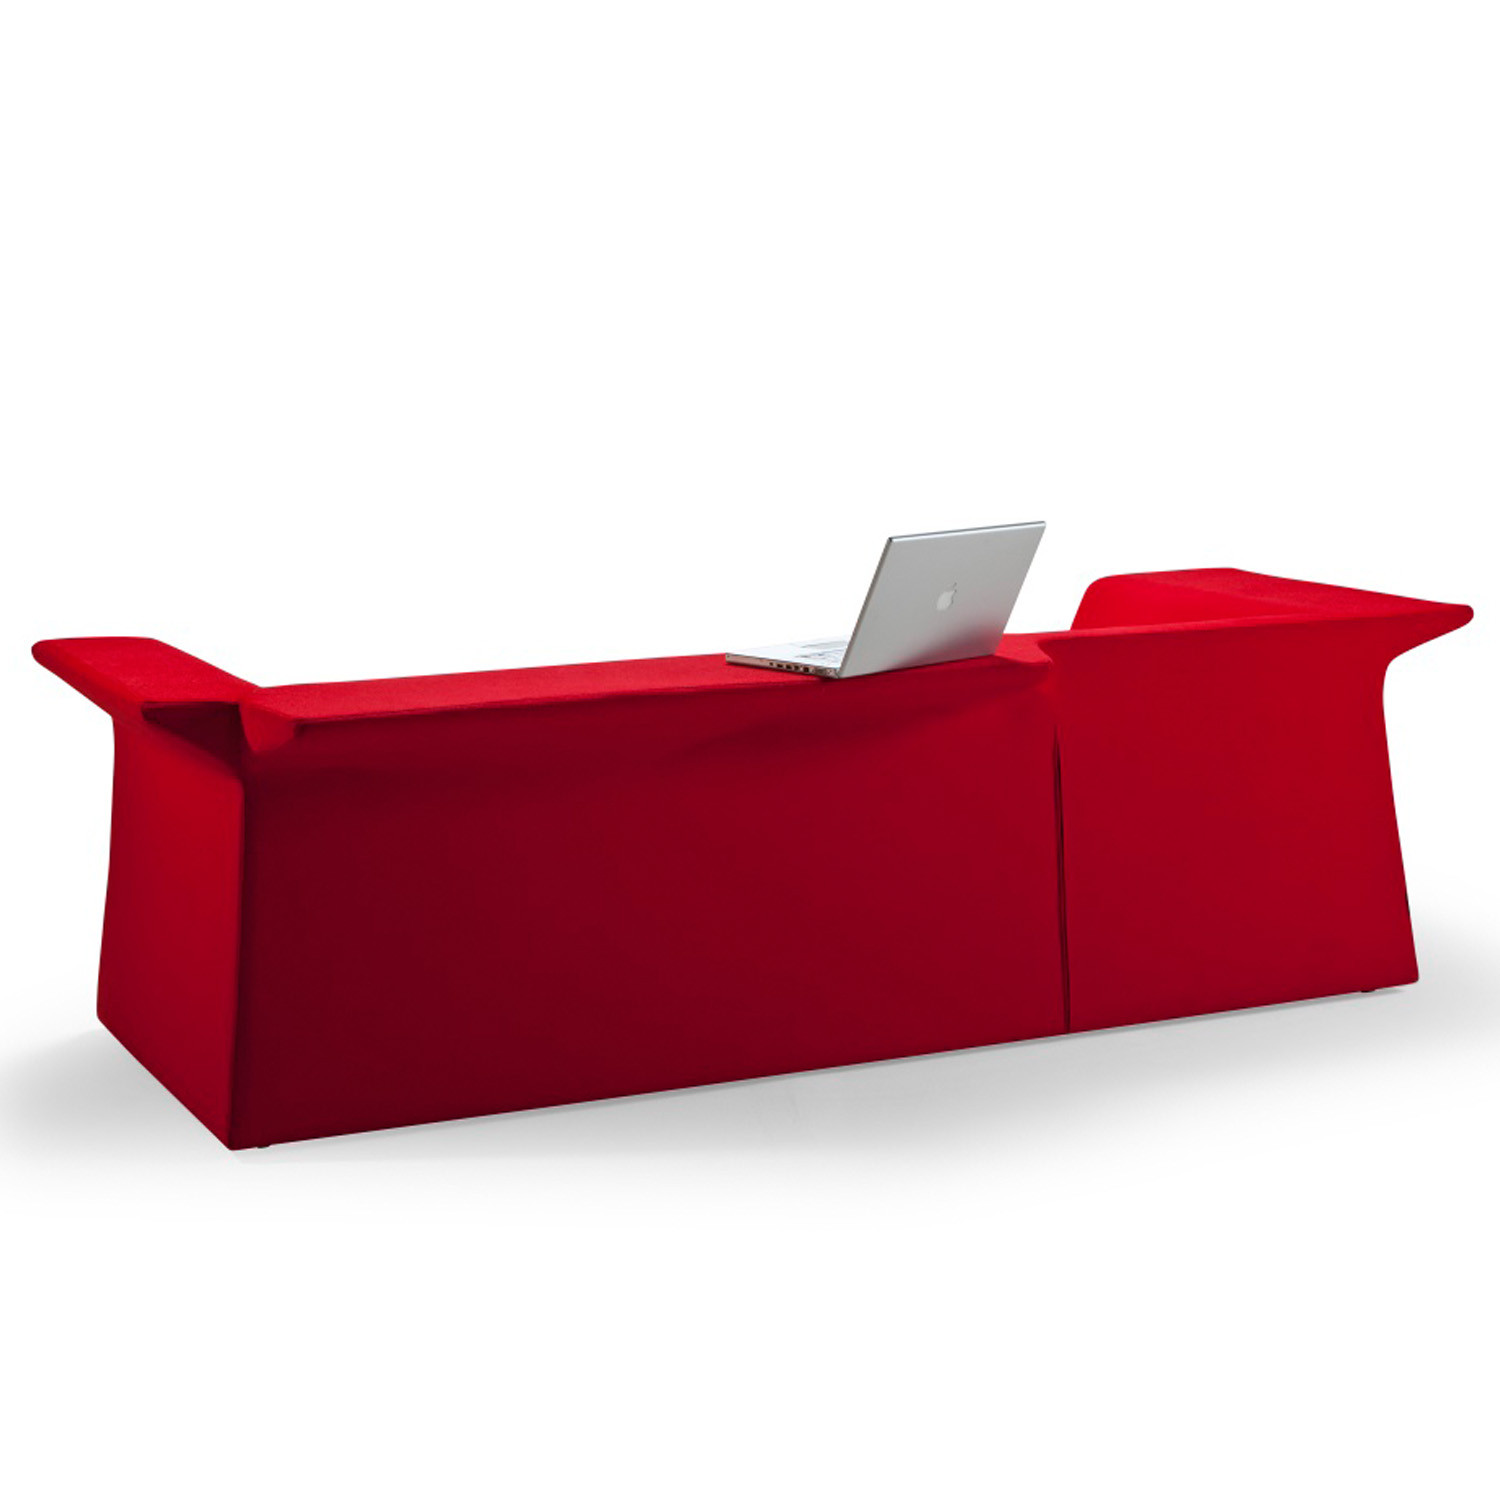 Ikaros Sofa Modern fice Soft Seating